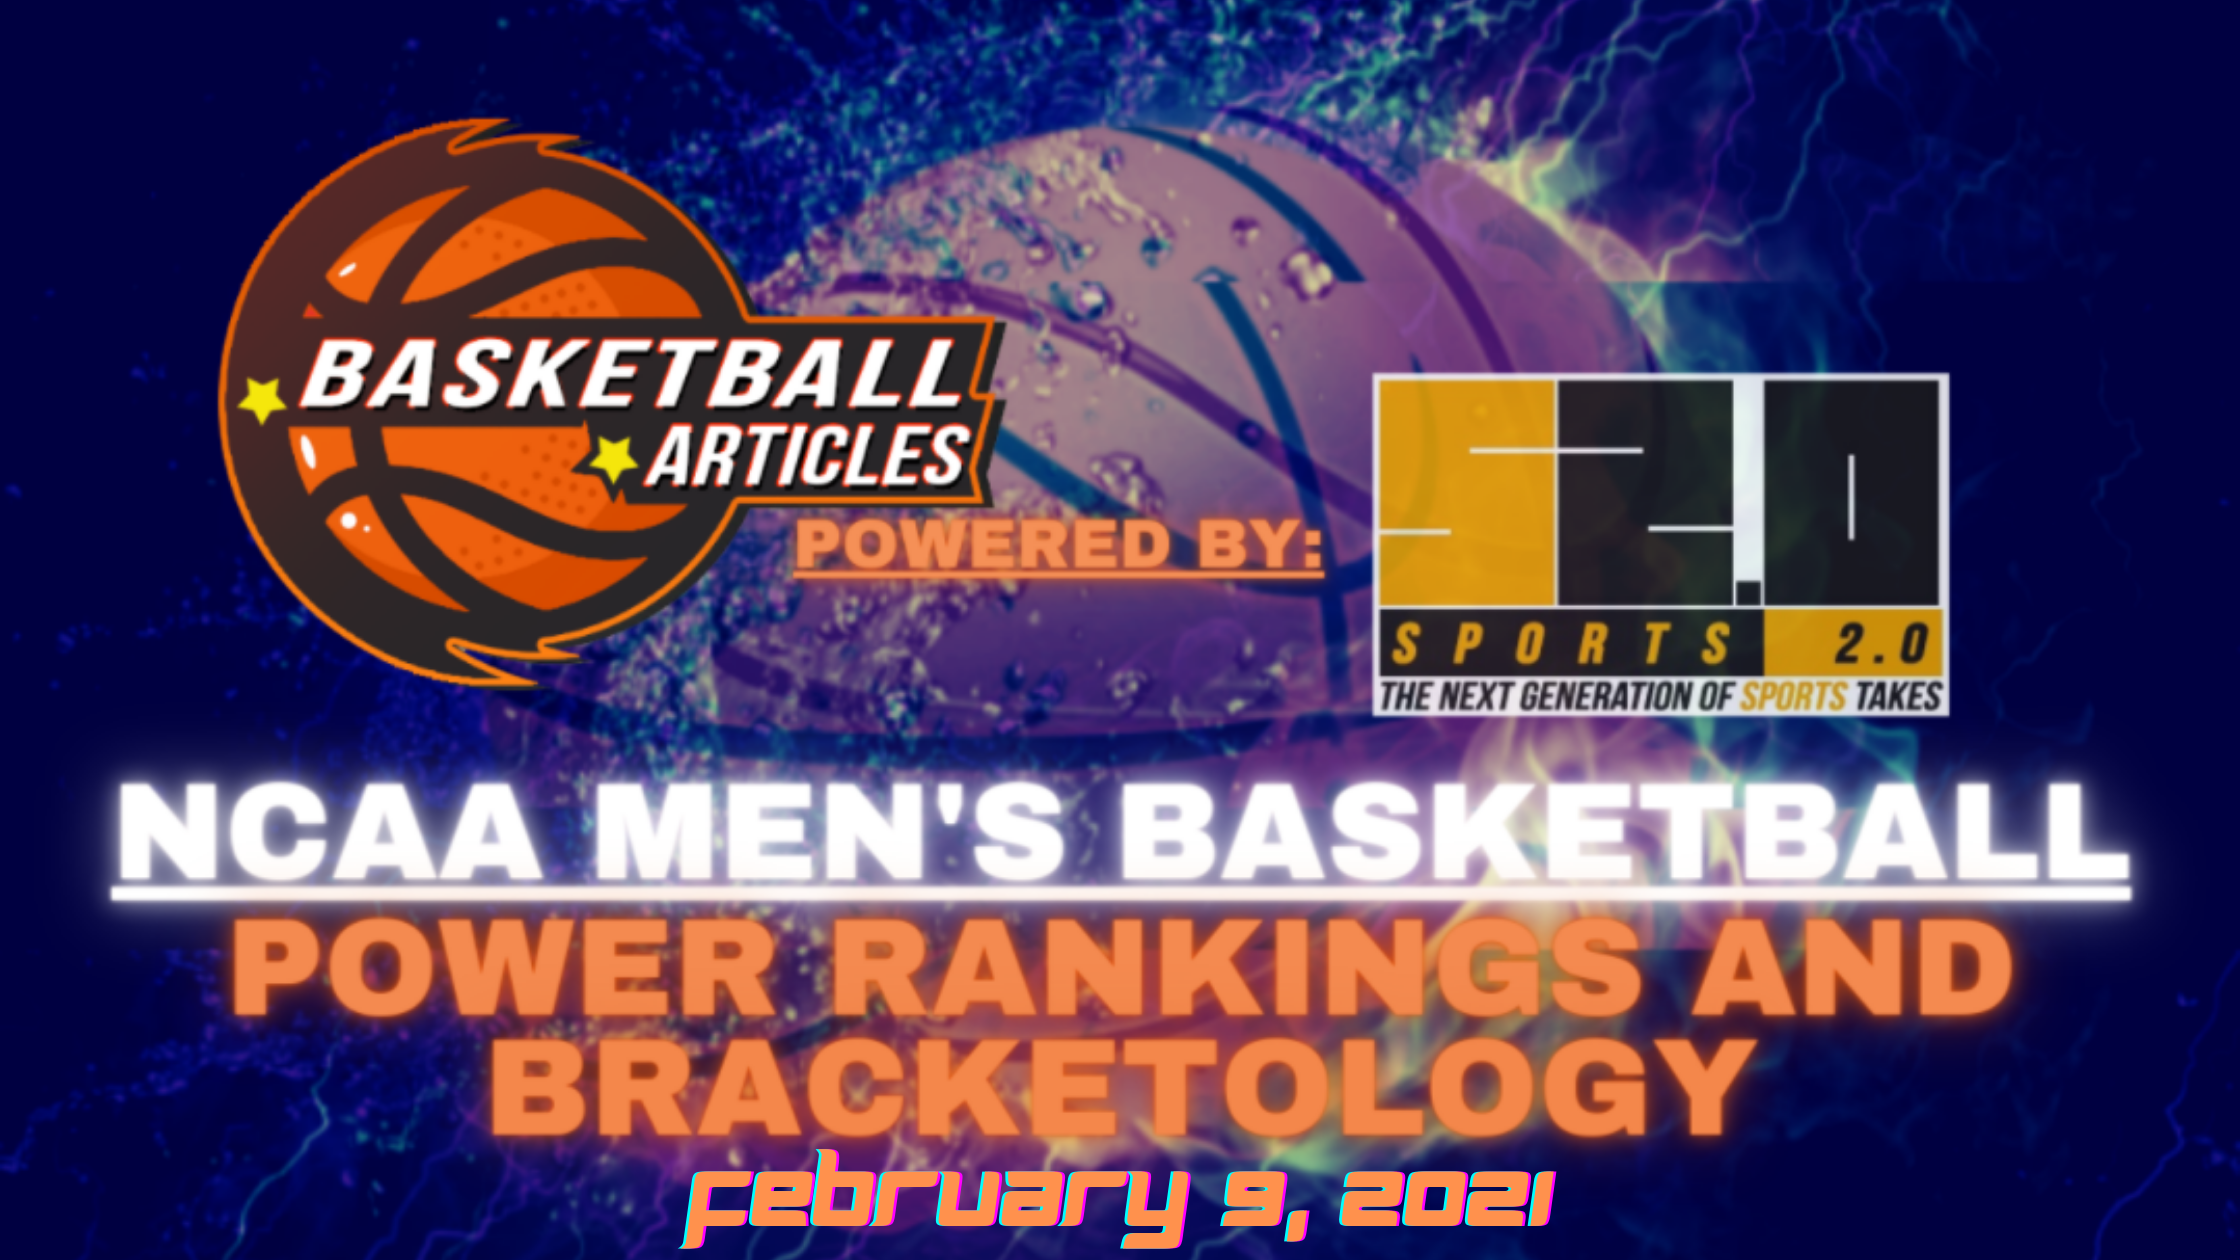 basketball power rankings and bracketology 02.09.21